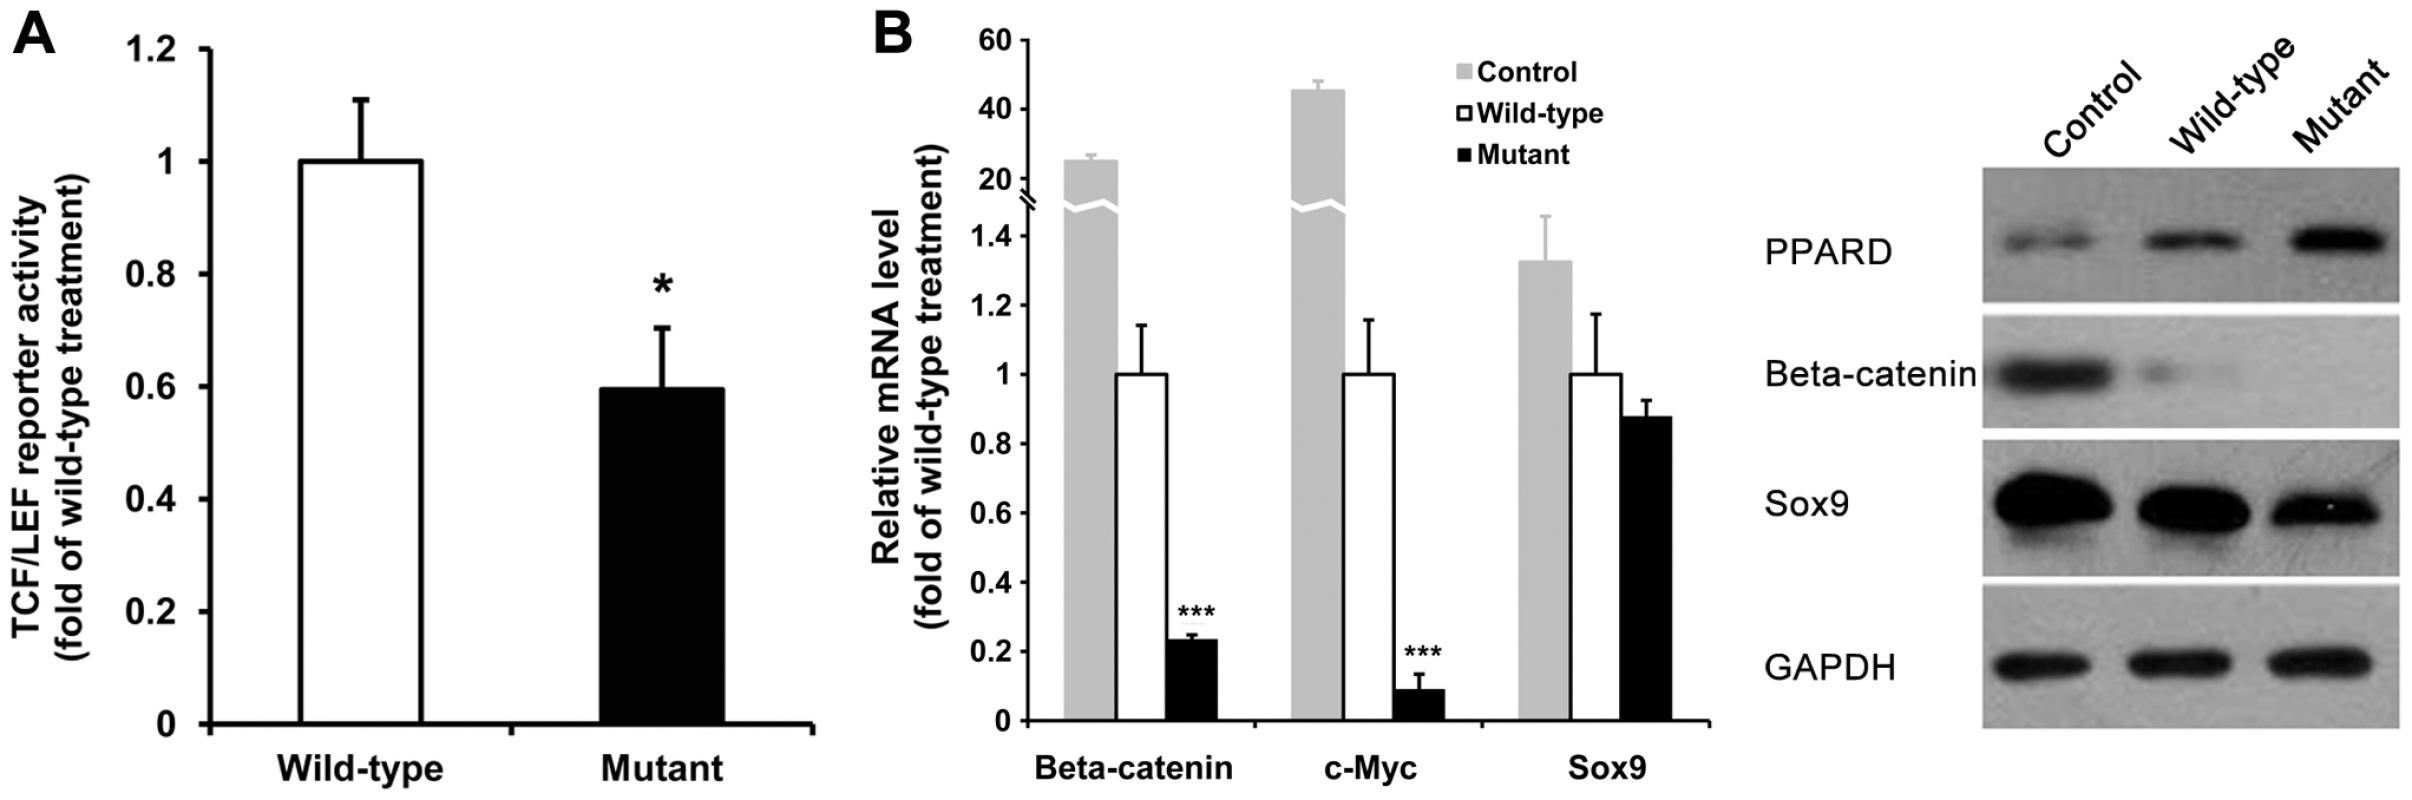 <i>PPARD</i> G32E mediates down-regulation of critical genes in the Wnt/<i>β-catenin</i> signaling pathway.